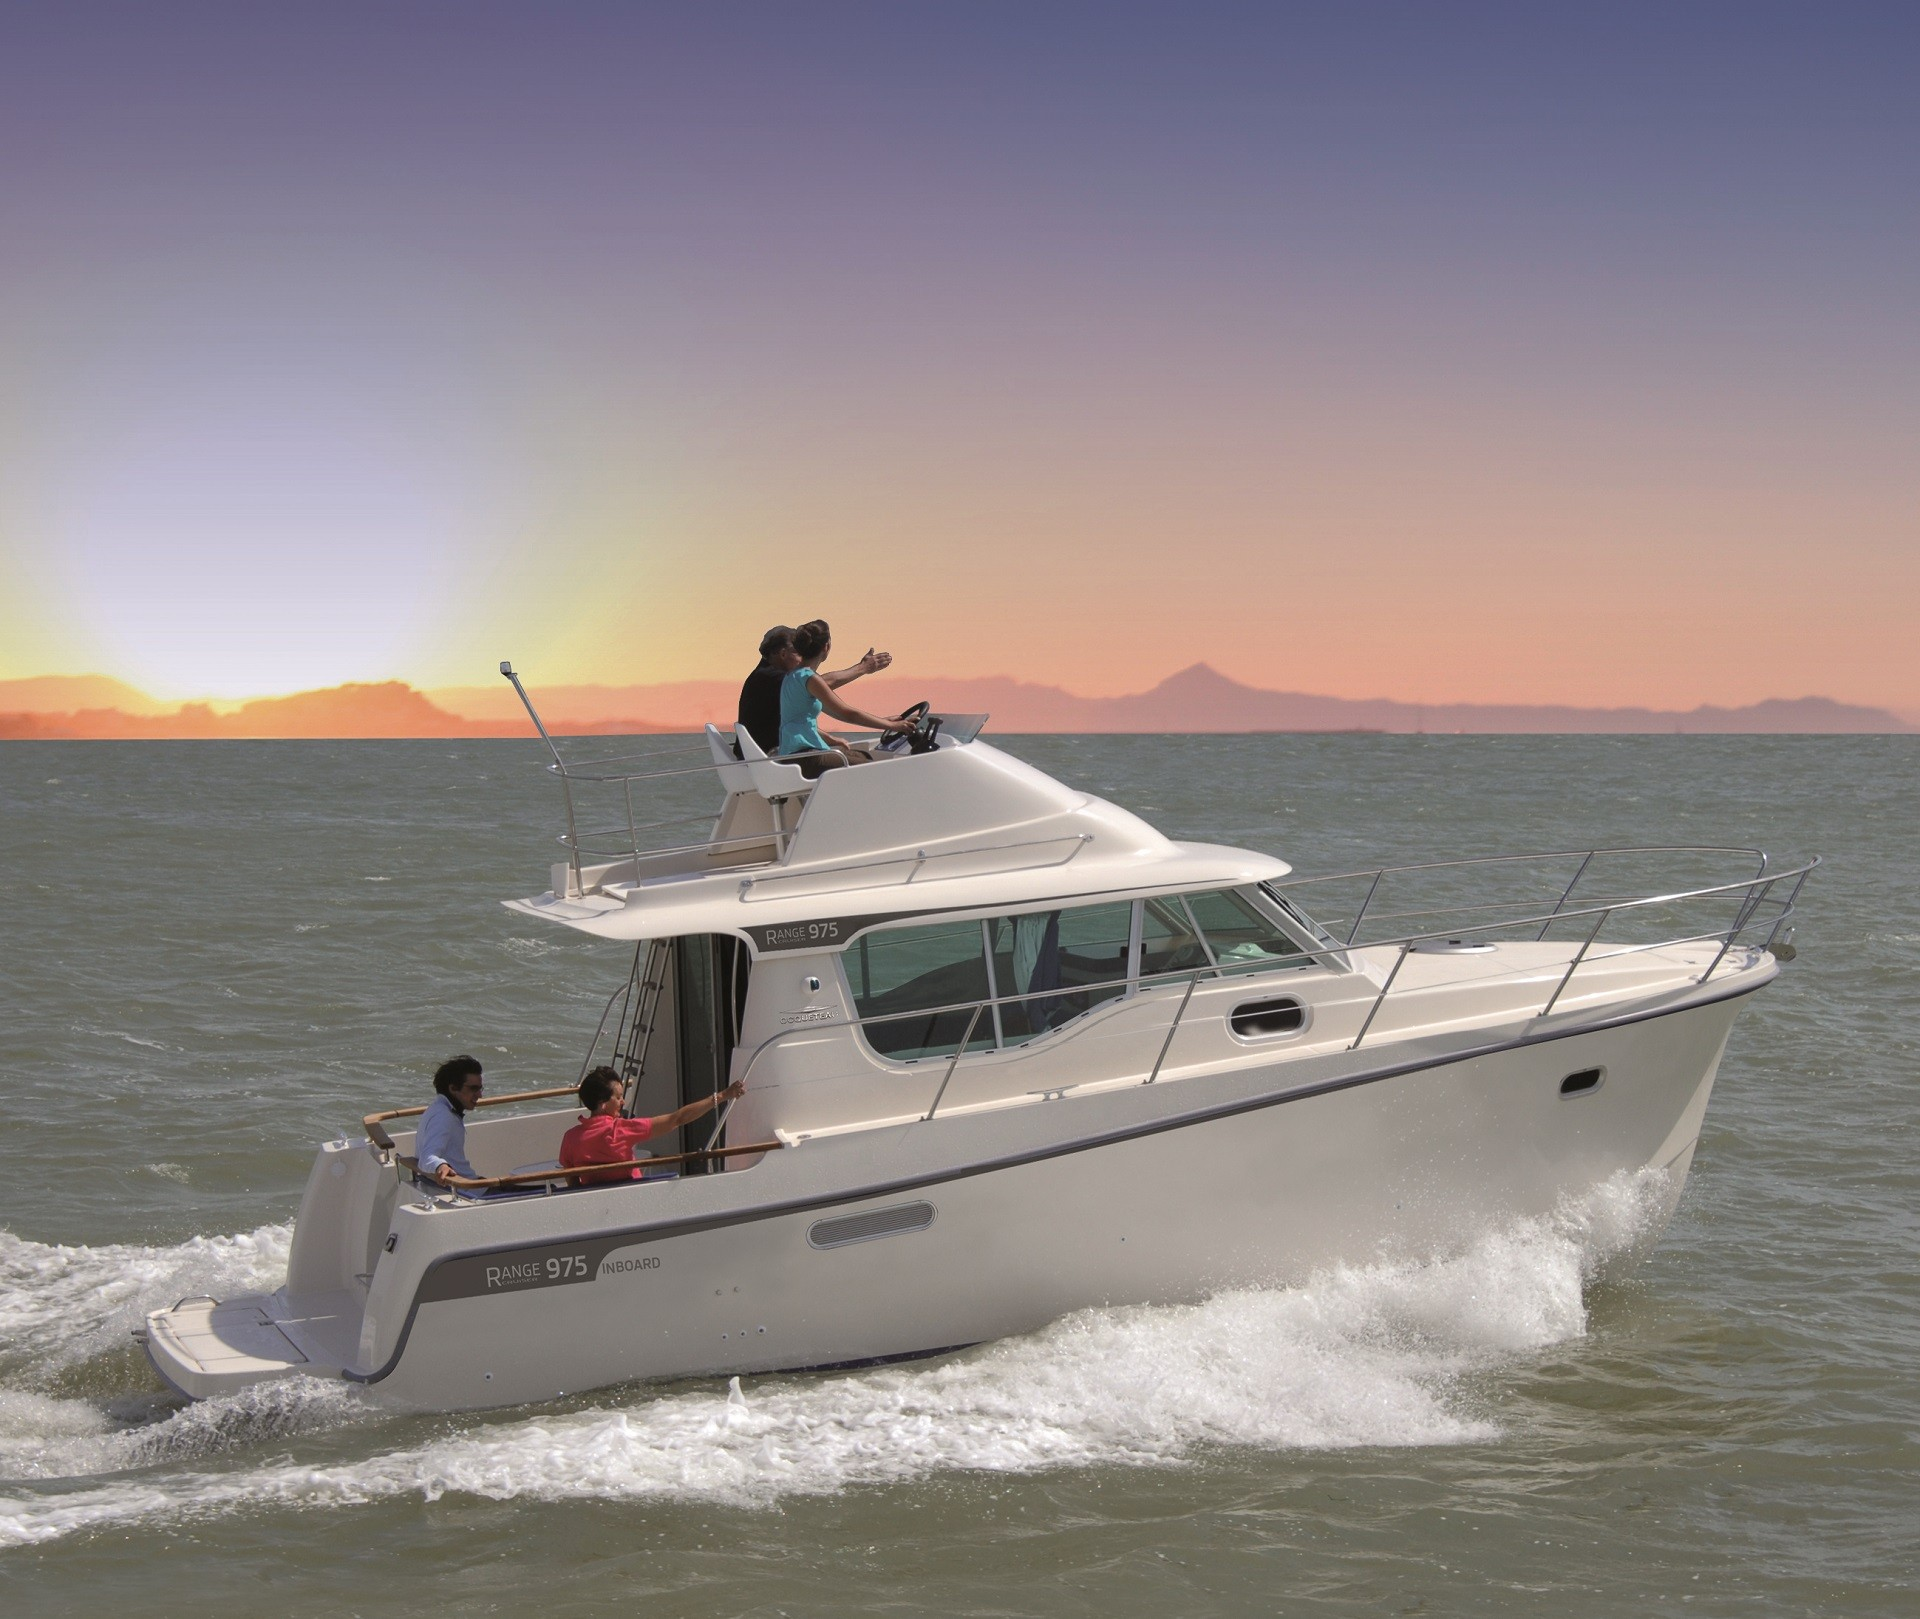 New Range Cruiser 975 OCQUTEAU